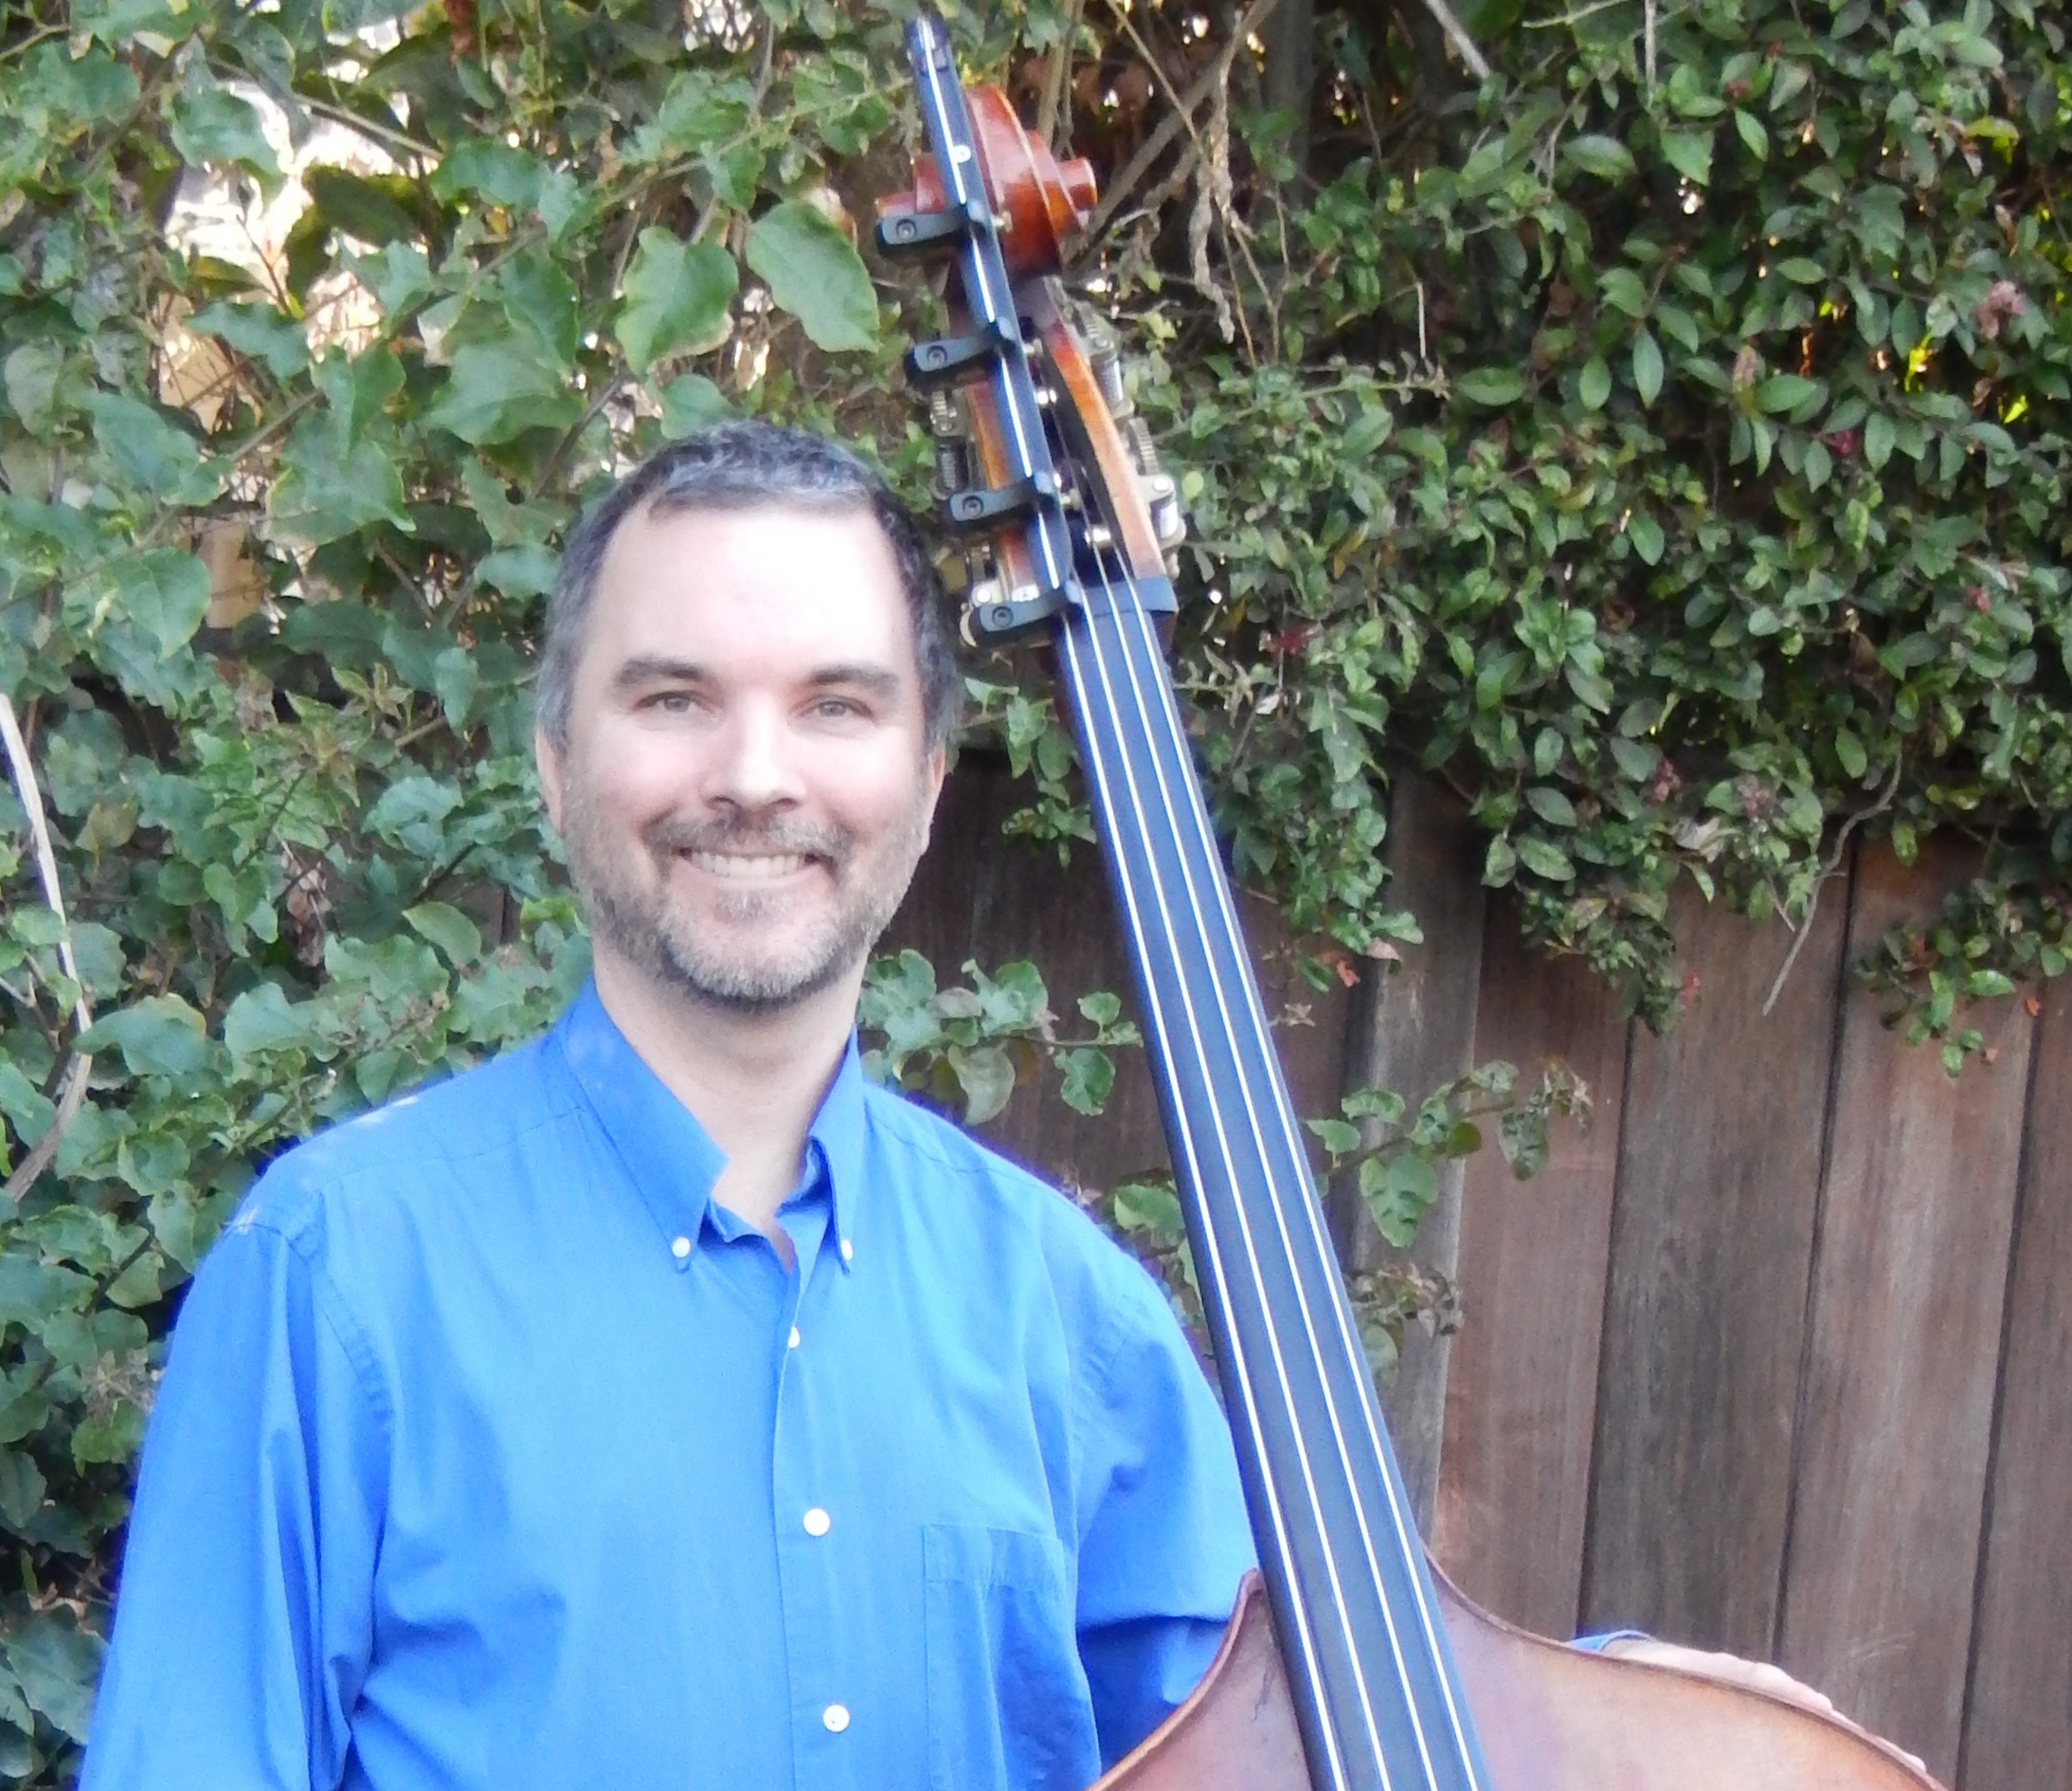 Composer, Bassist - John is a composer, bassist, improvisor, and teacher. He writes contemporary classical, jazz, and film trailer music. Equally comfortable on double bass as well as bass guitar, he performs around the Los Angeles area in such diverse genres as jazz, classical, musical theater, and world music.